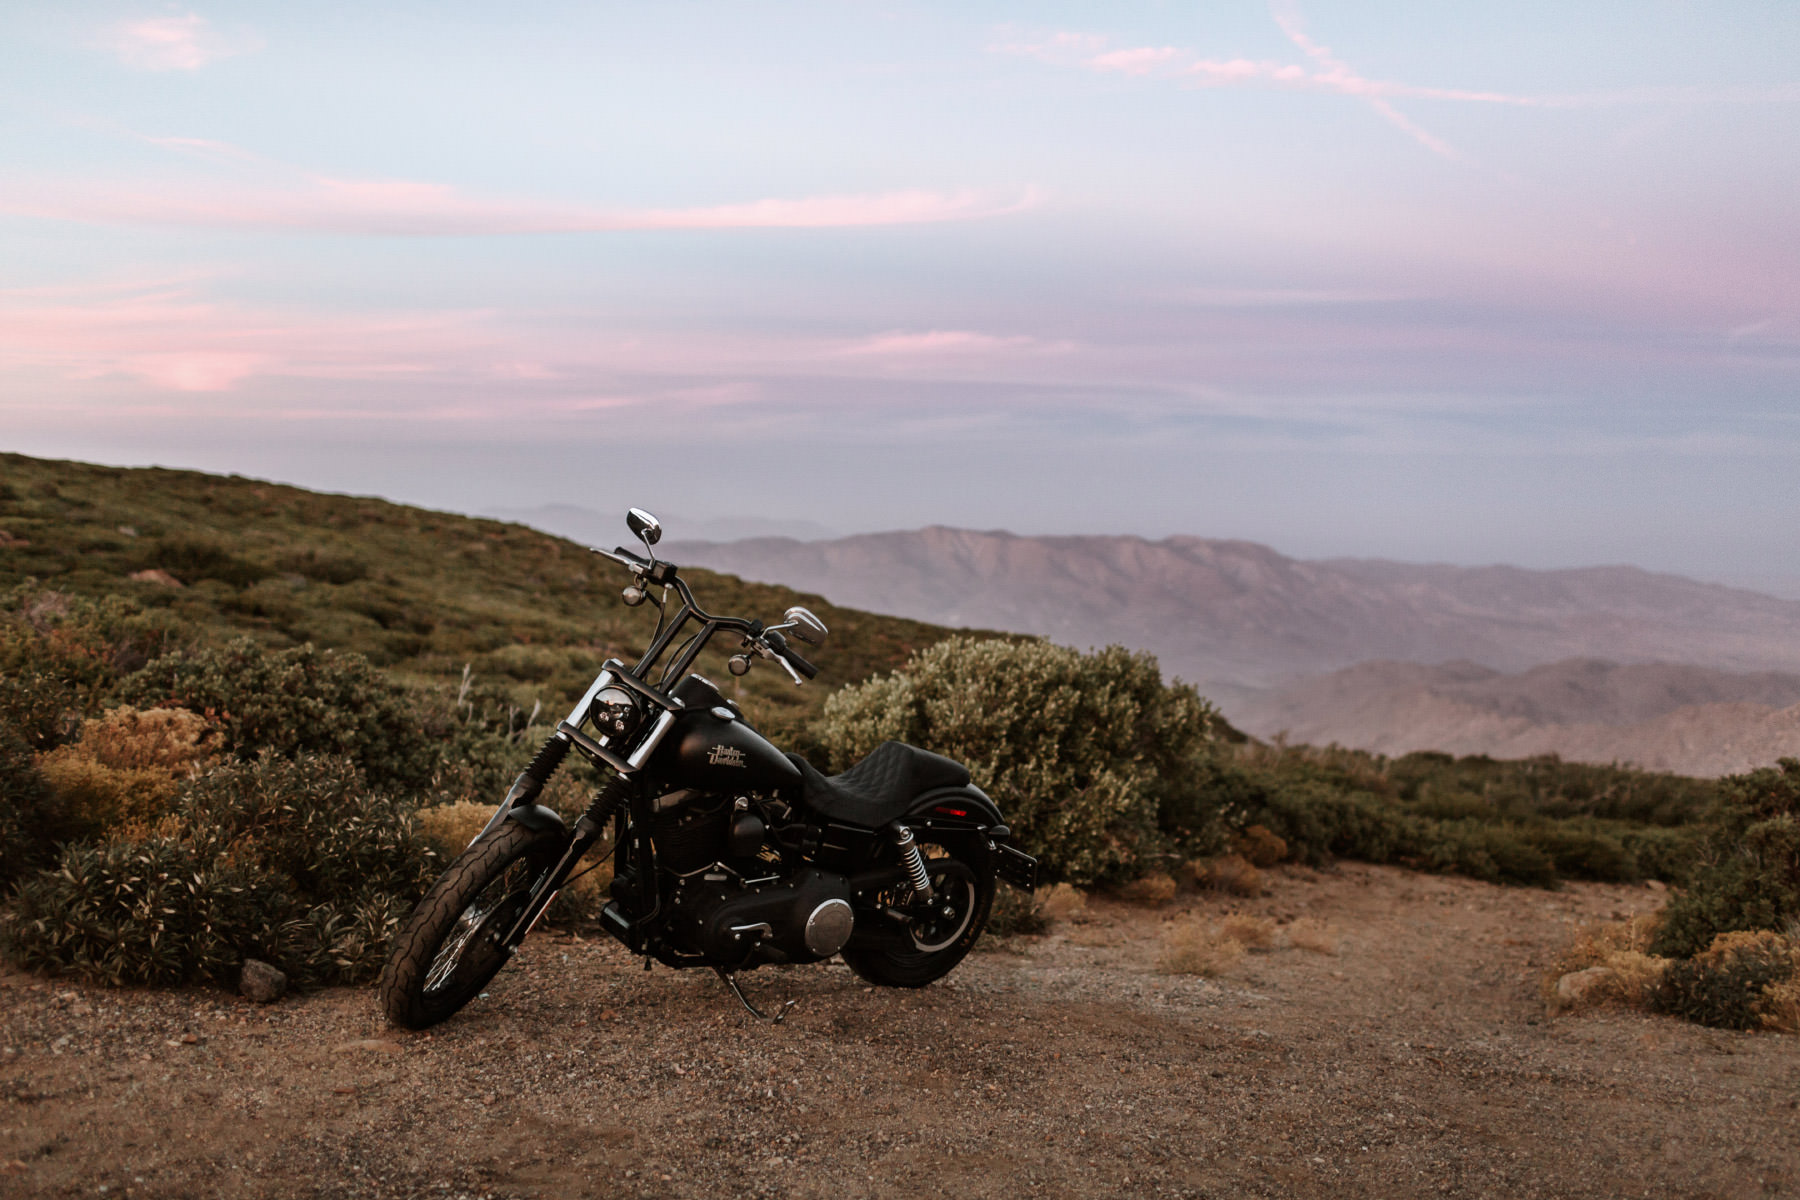 Harley Davidson at desert overlook